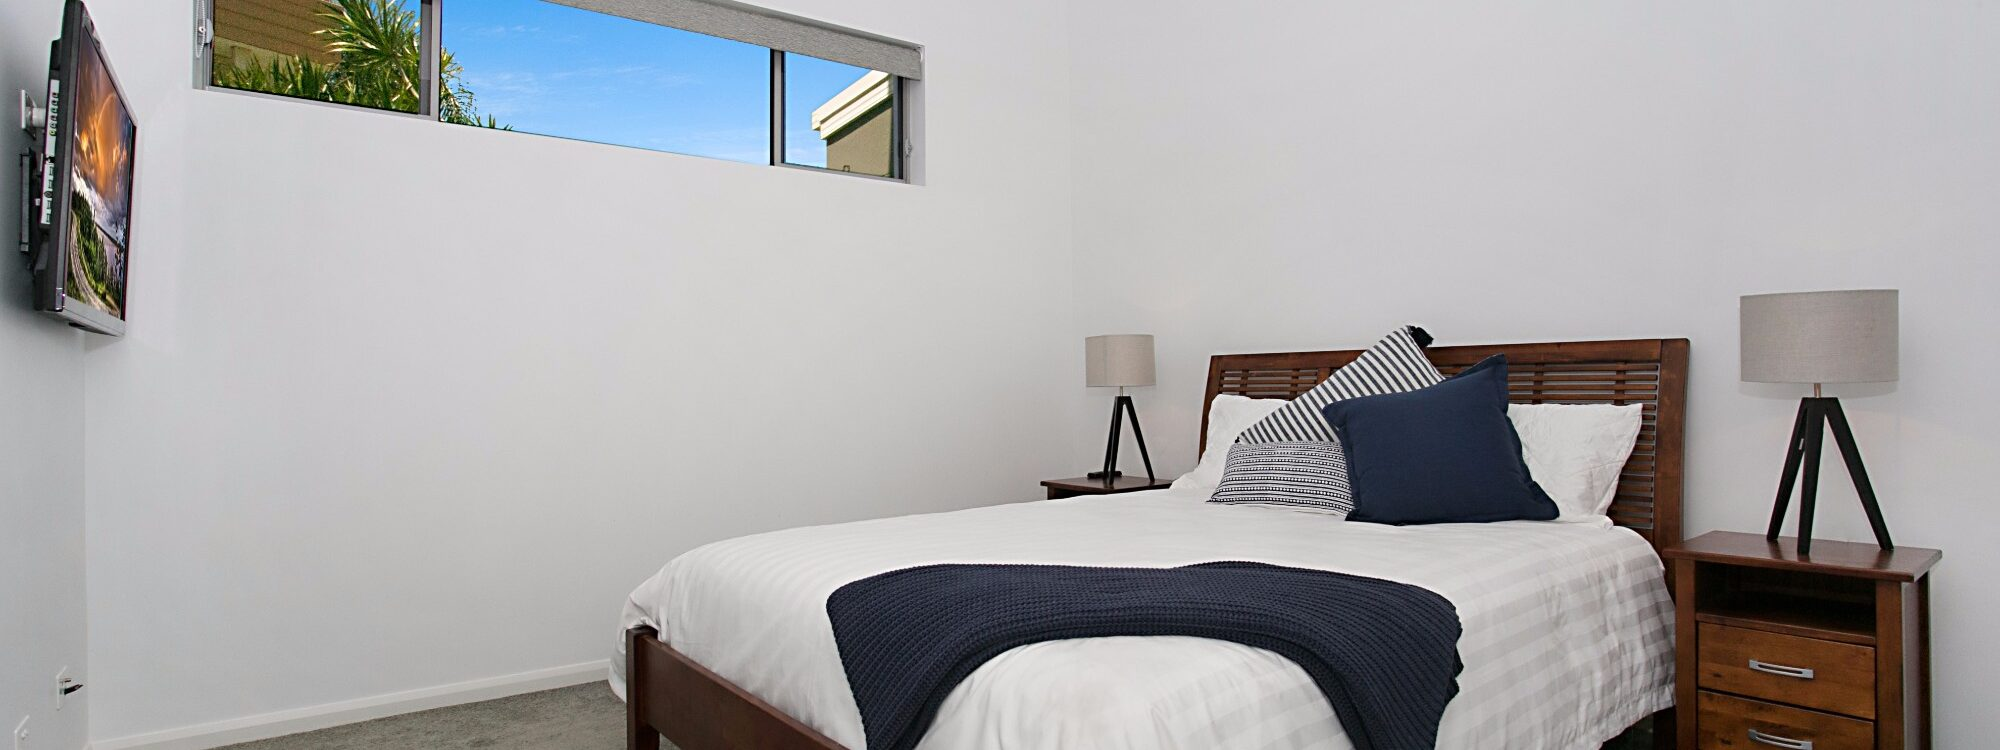 Pacific Breeze - Broadbeach - Bedroom 5